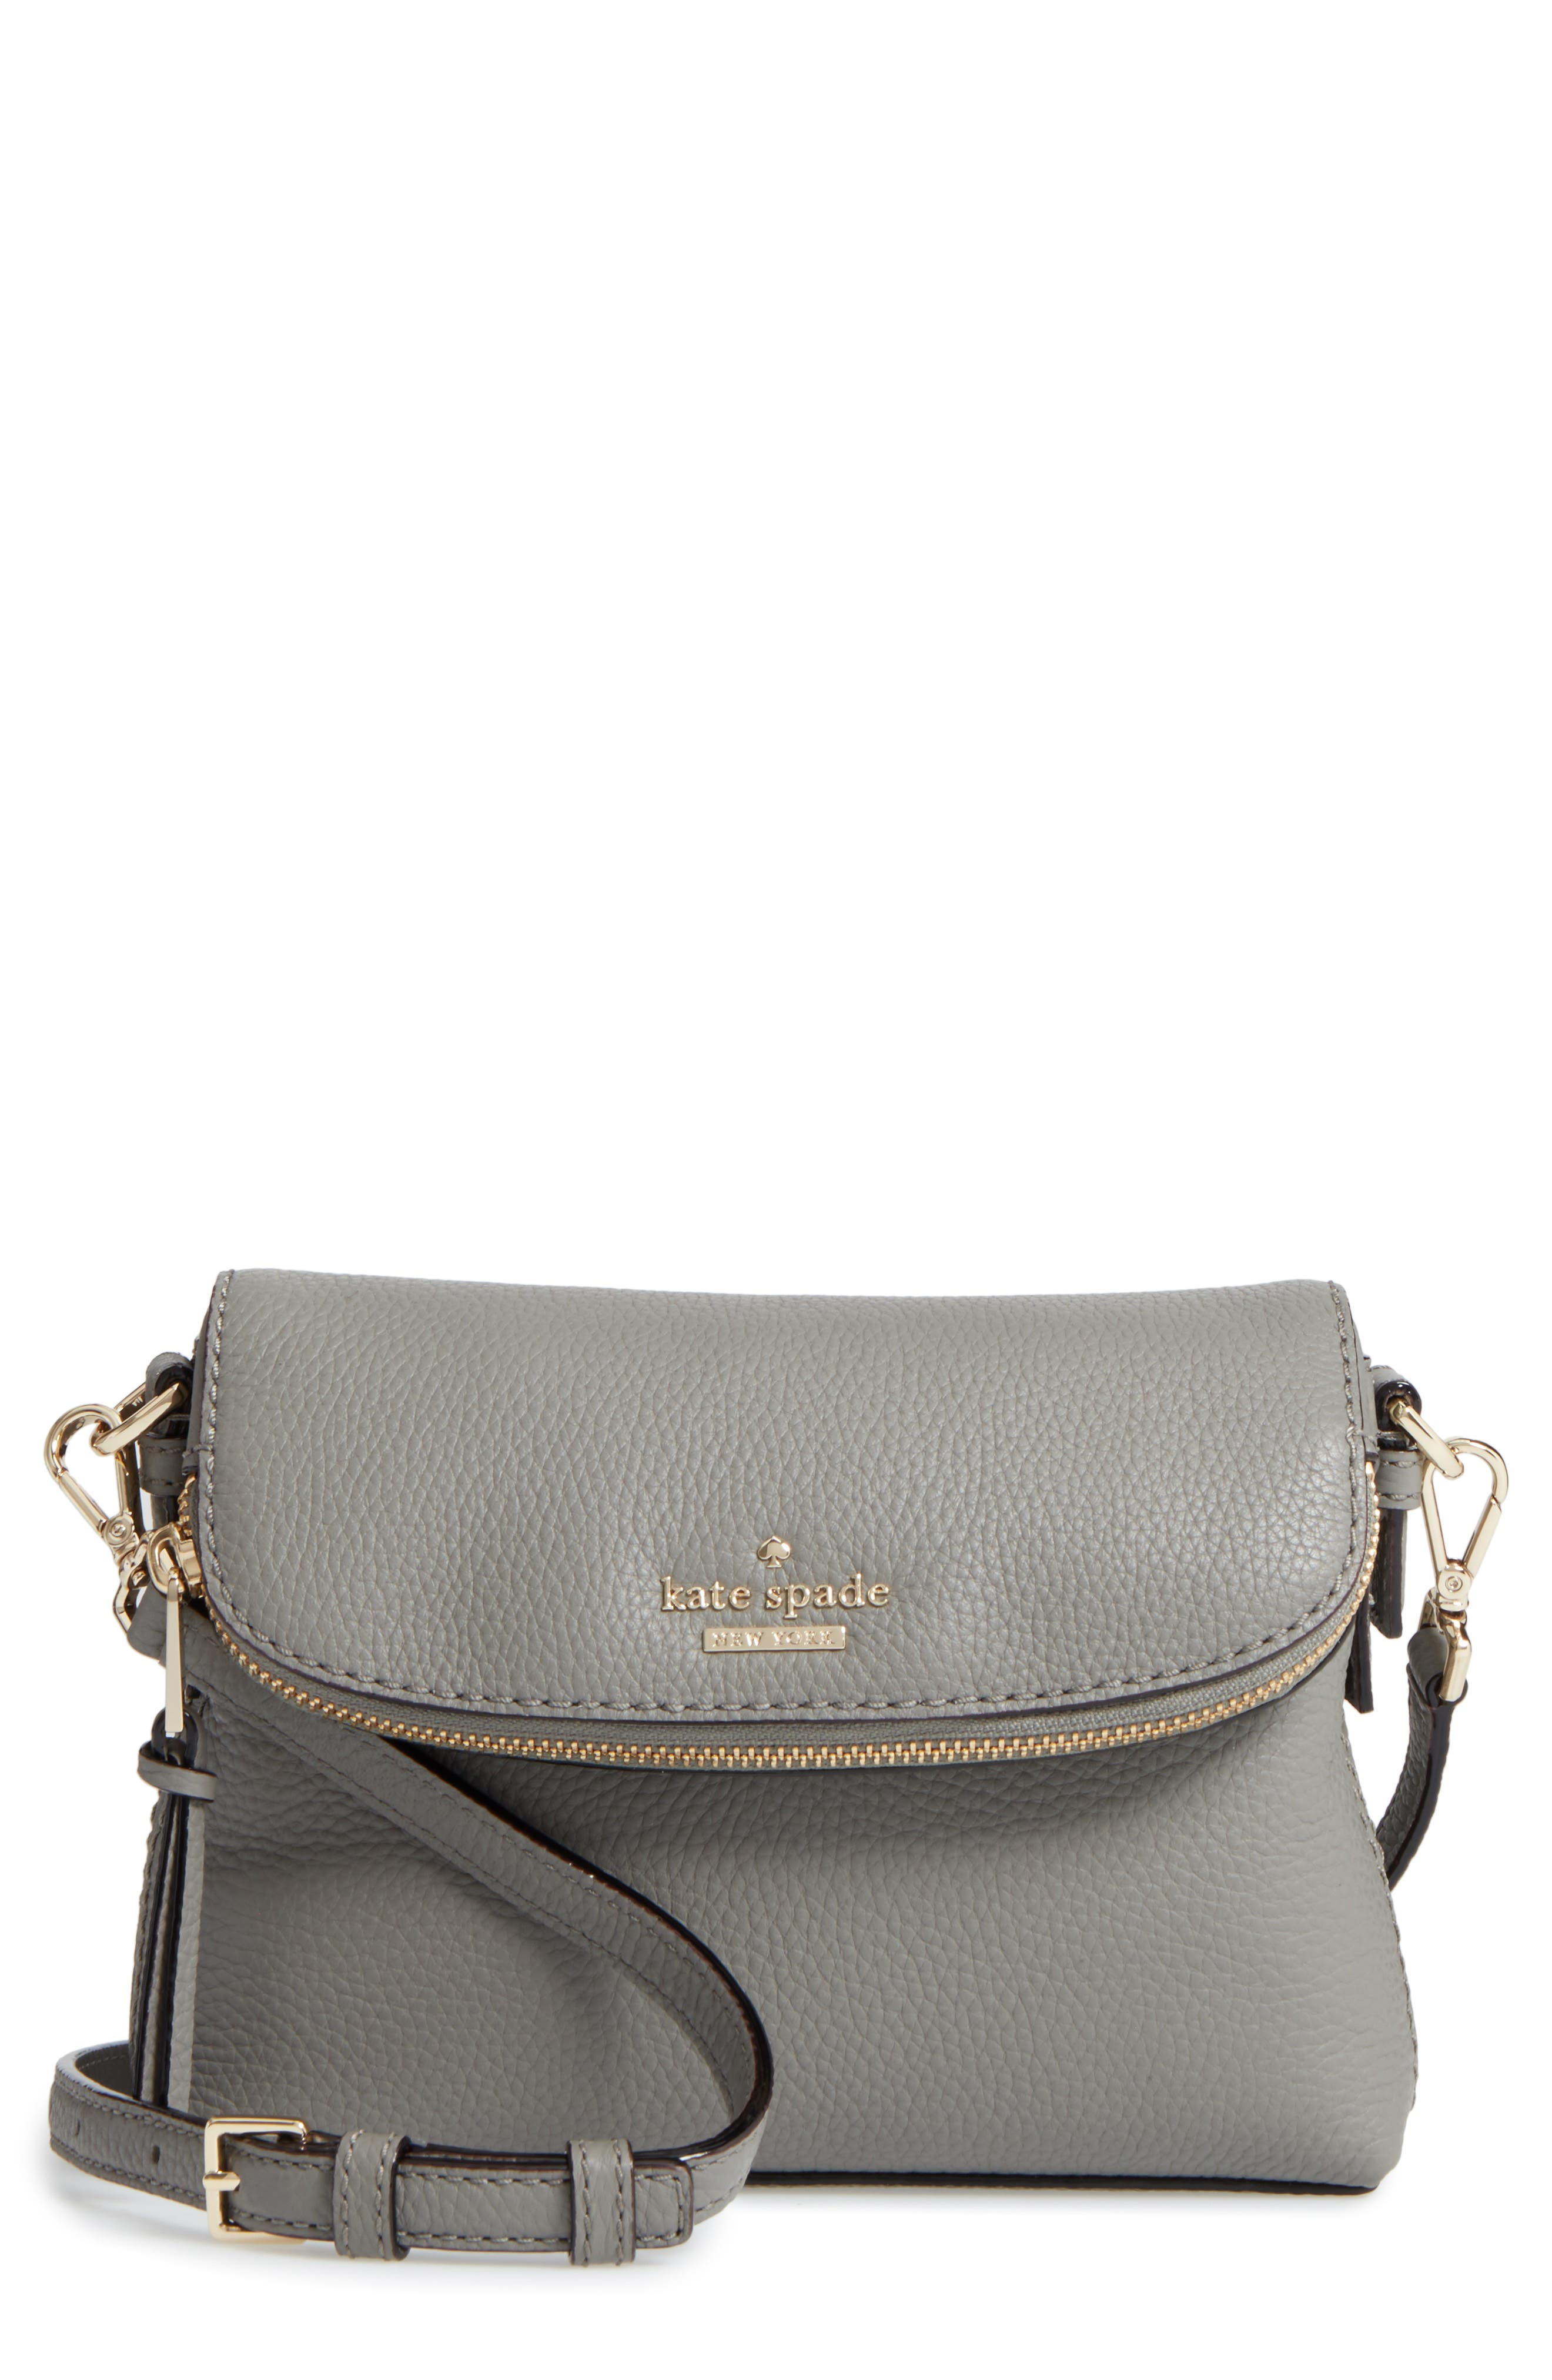 Alternate Image 1 Selected - kate spade new york jackson street harlyn leather crossbody bag